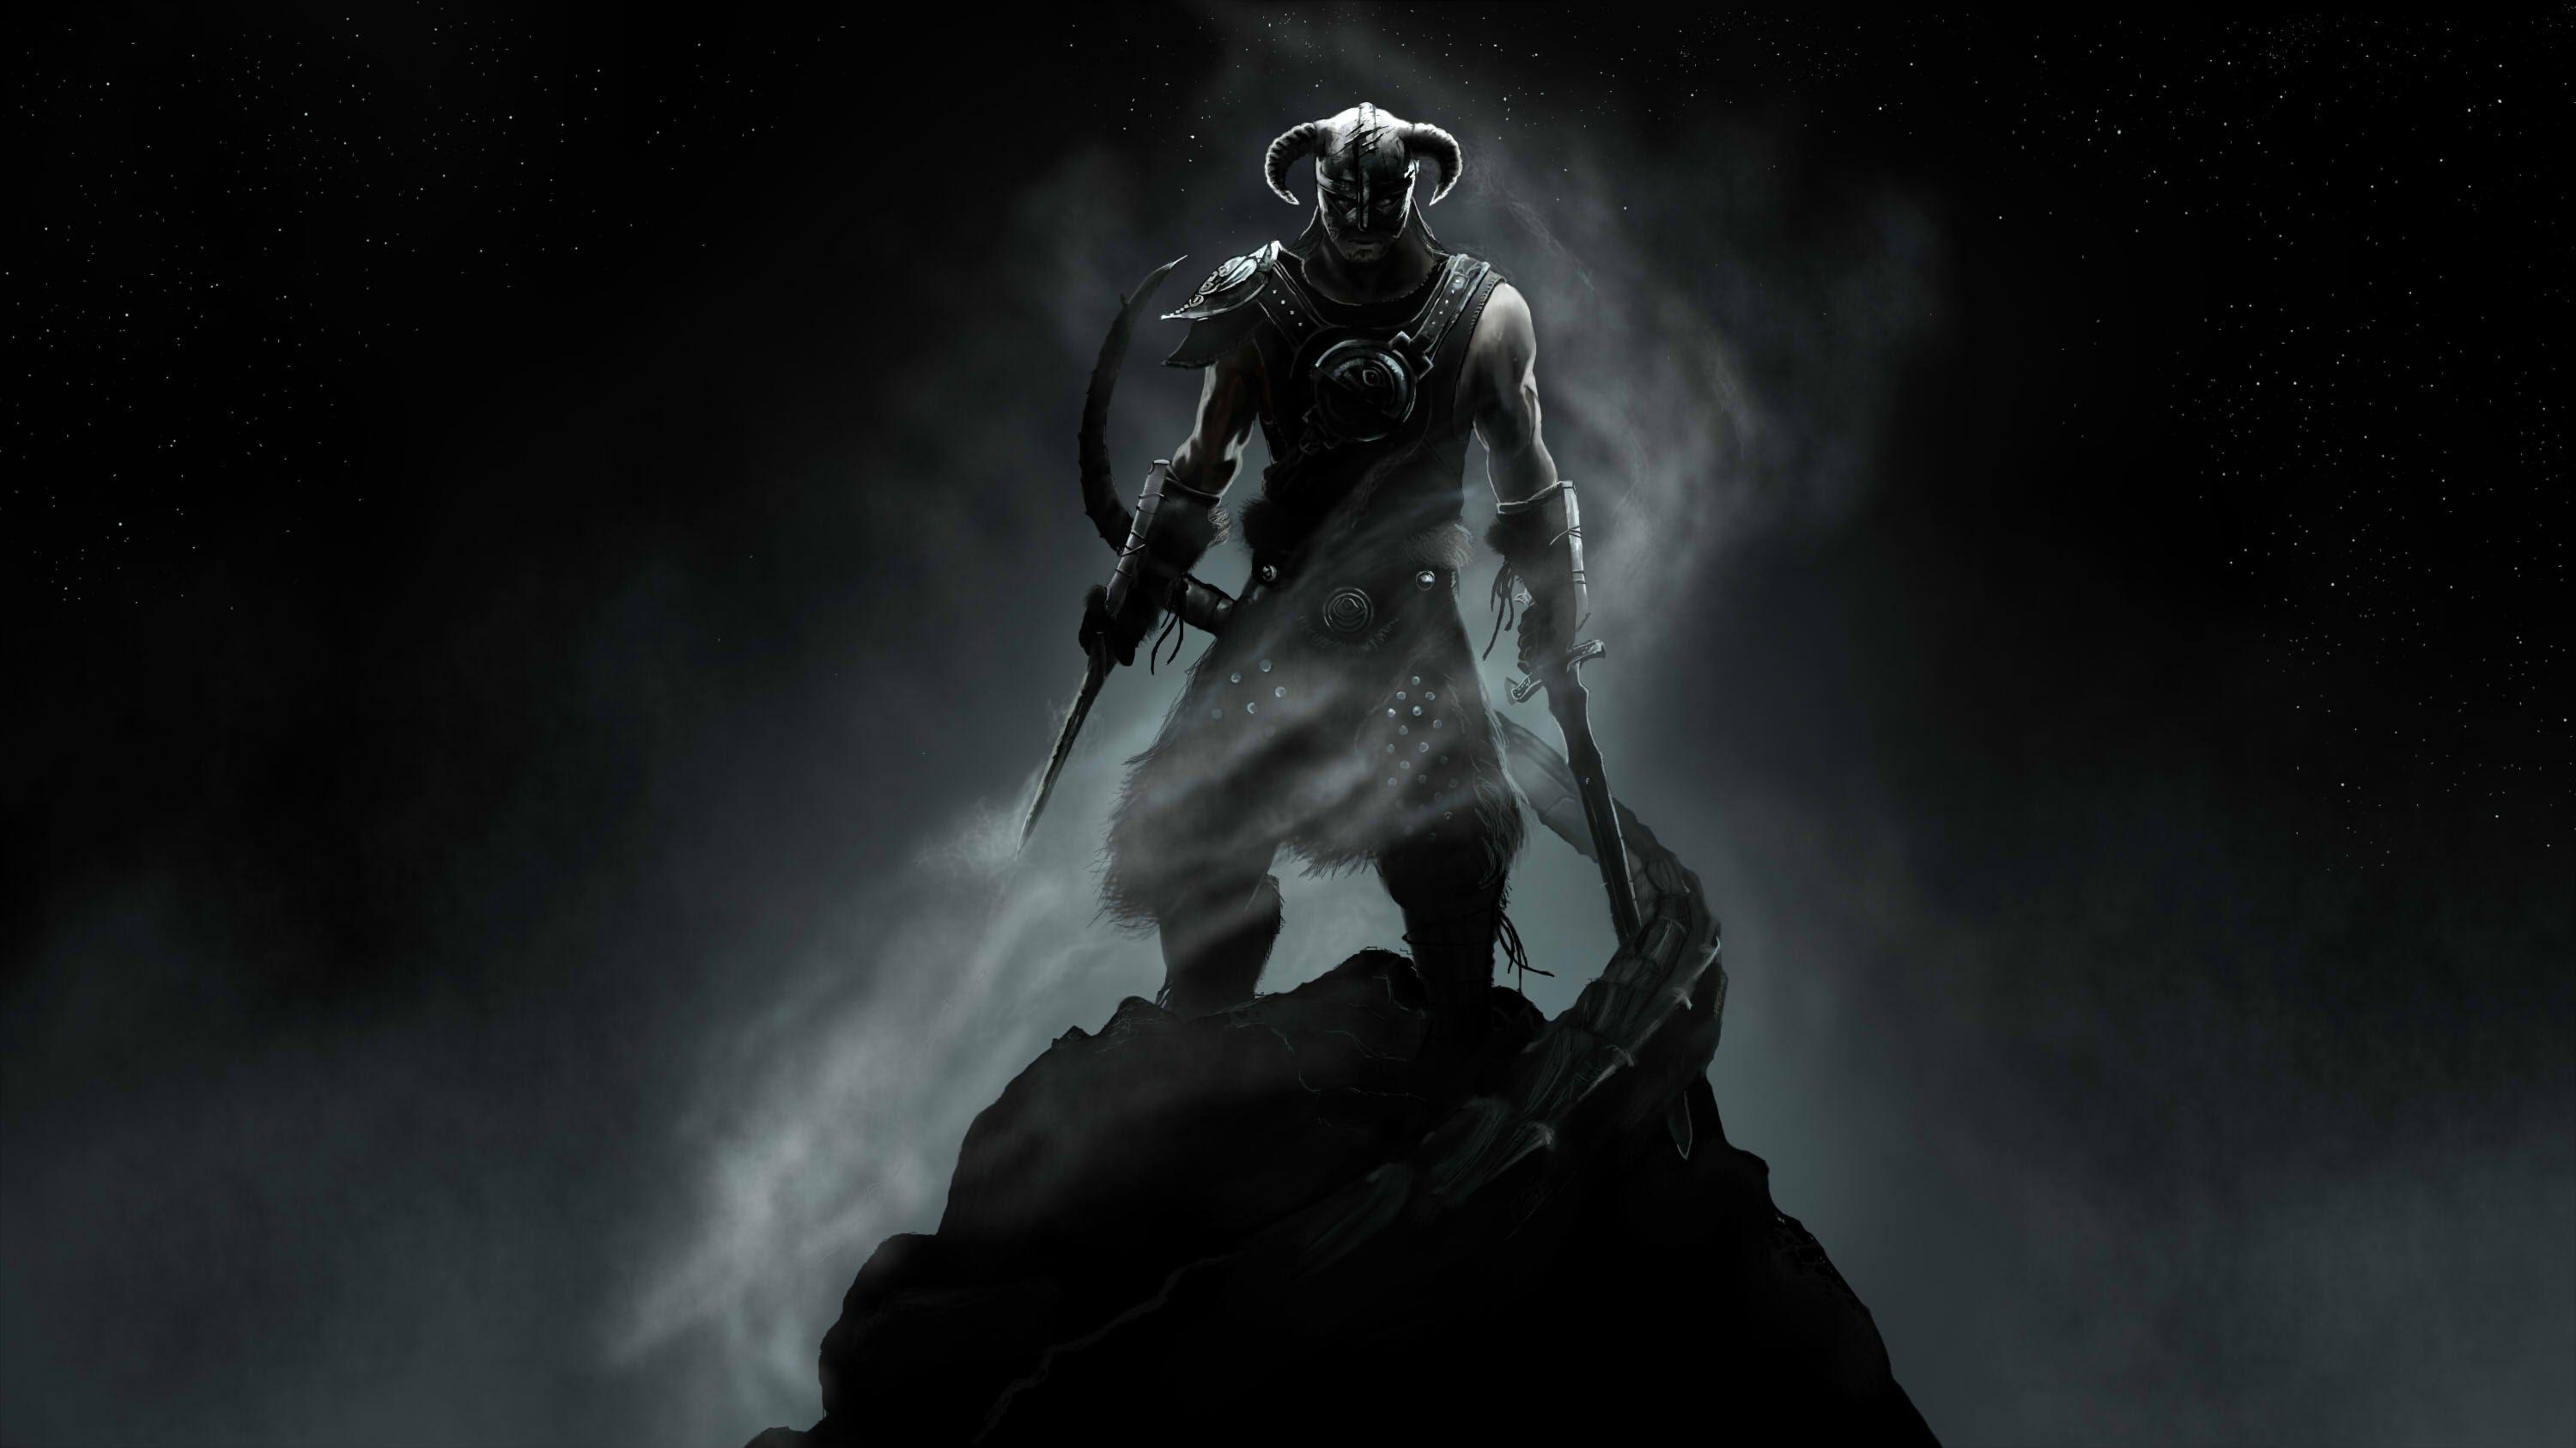 Collection Of Dragonborn Wallpaper On Hdwallpapers Skyrim Full Hd